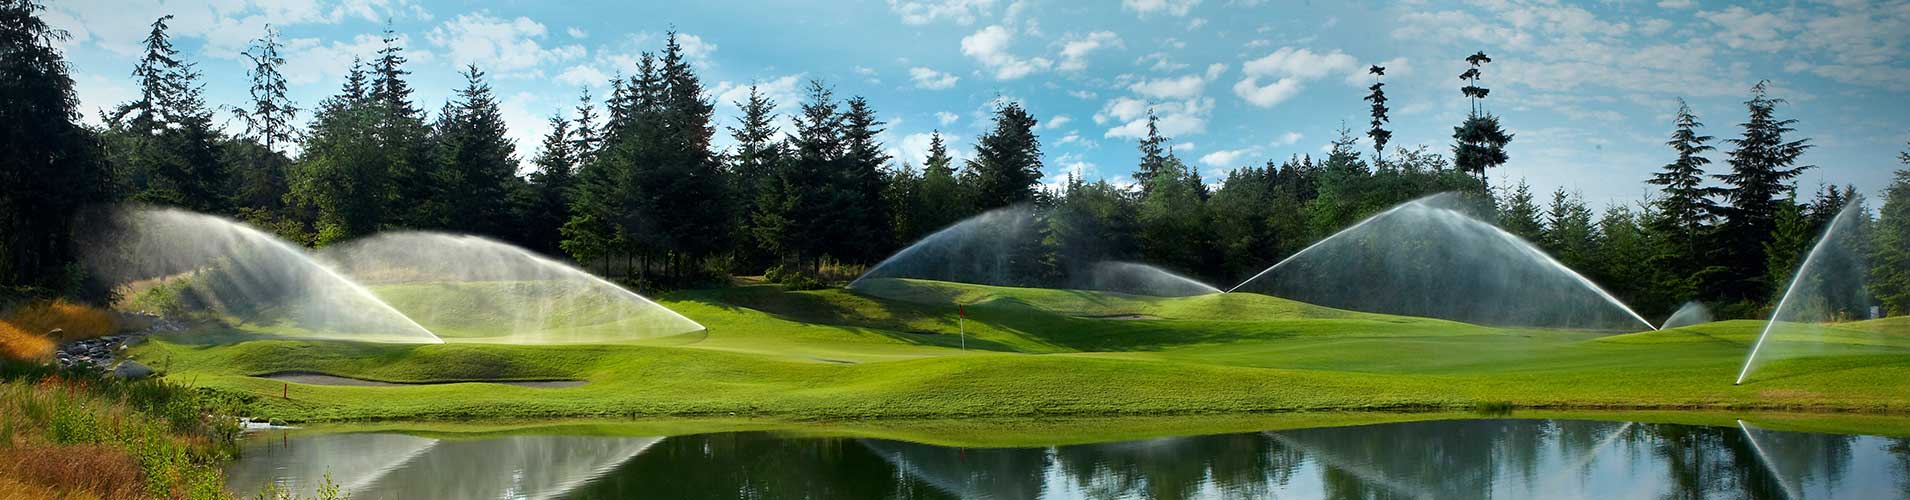 Golf Pop Up Sprinklers